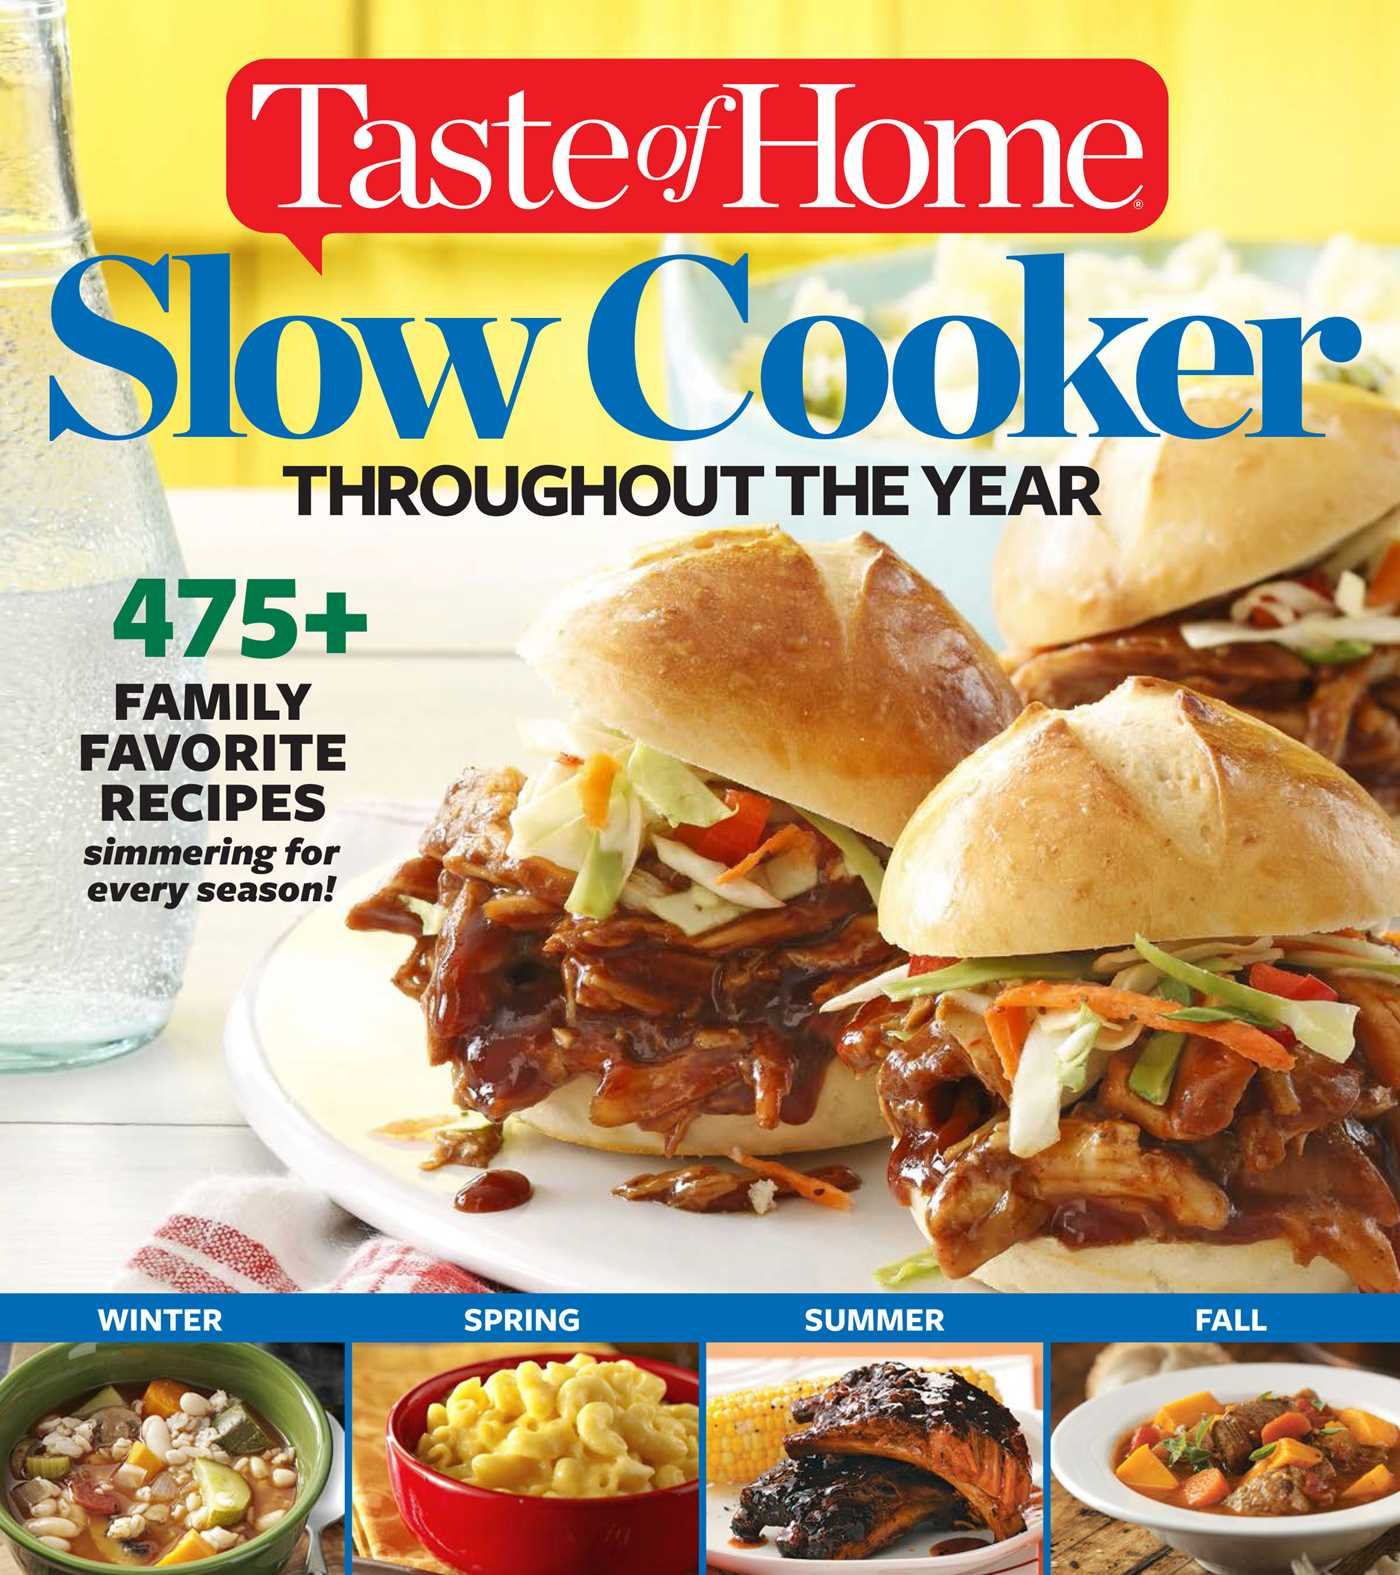 Taste-of-home-slow-cooker-throughout-the-year-9781617653452_hr